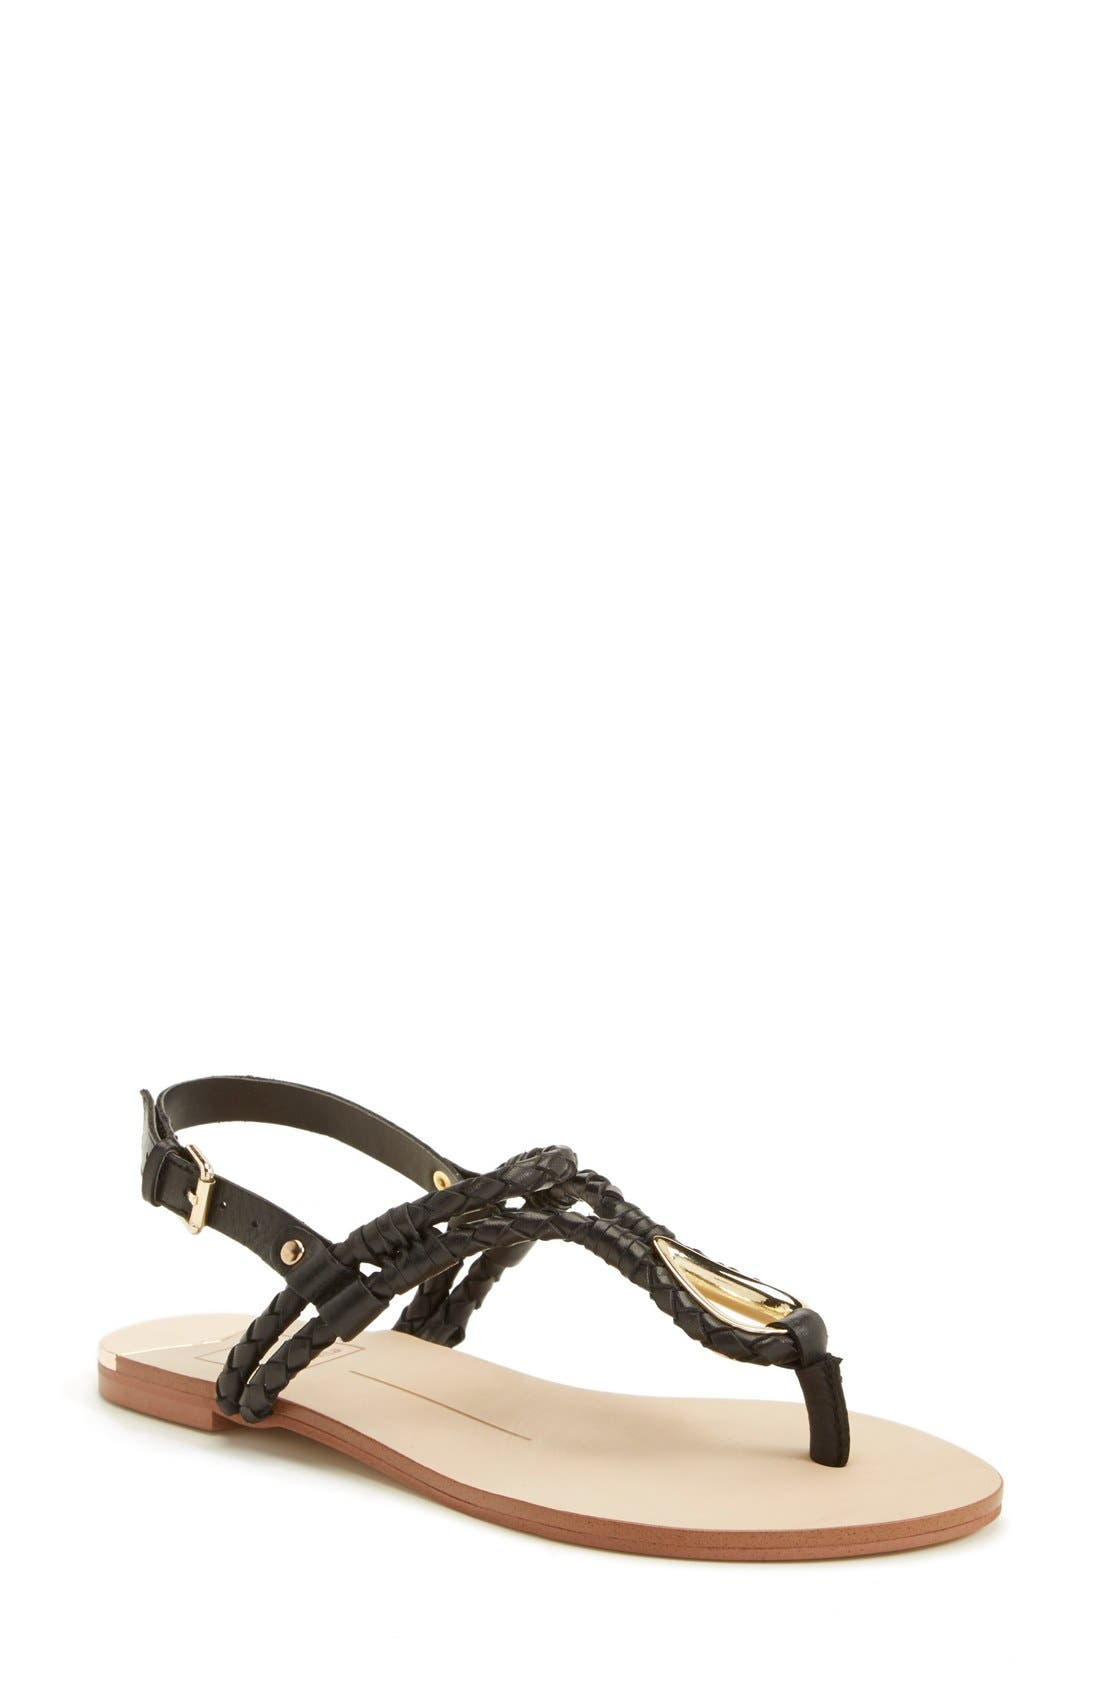 Alternate Image 1 Selected - Dolce Vita 'Dixin' Thong Sandal (Women)